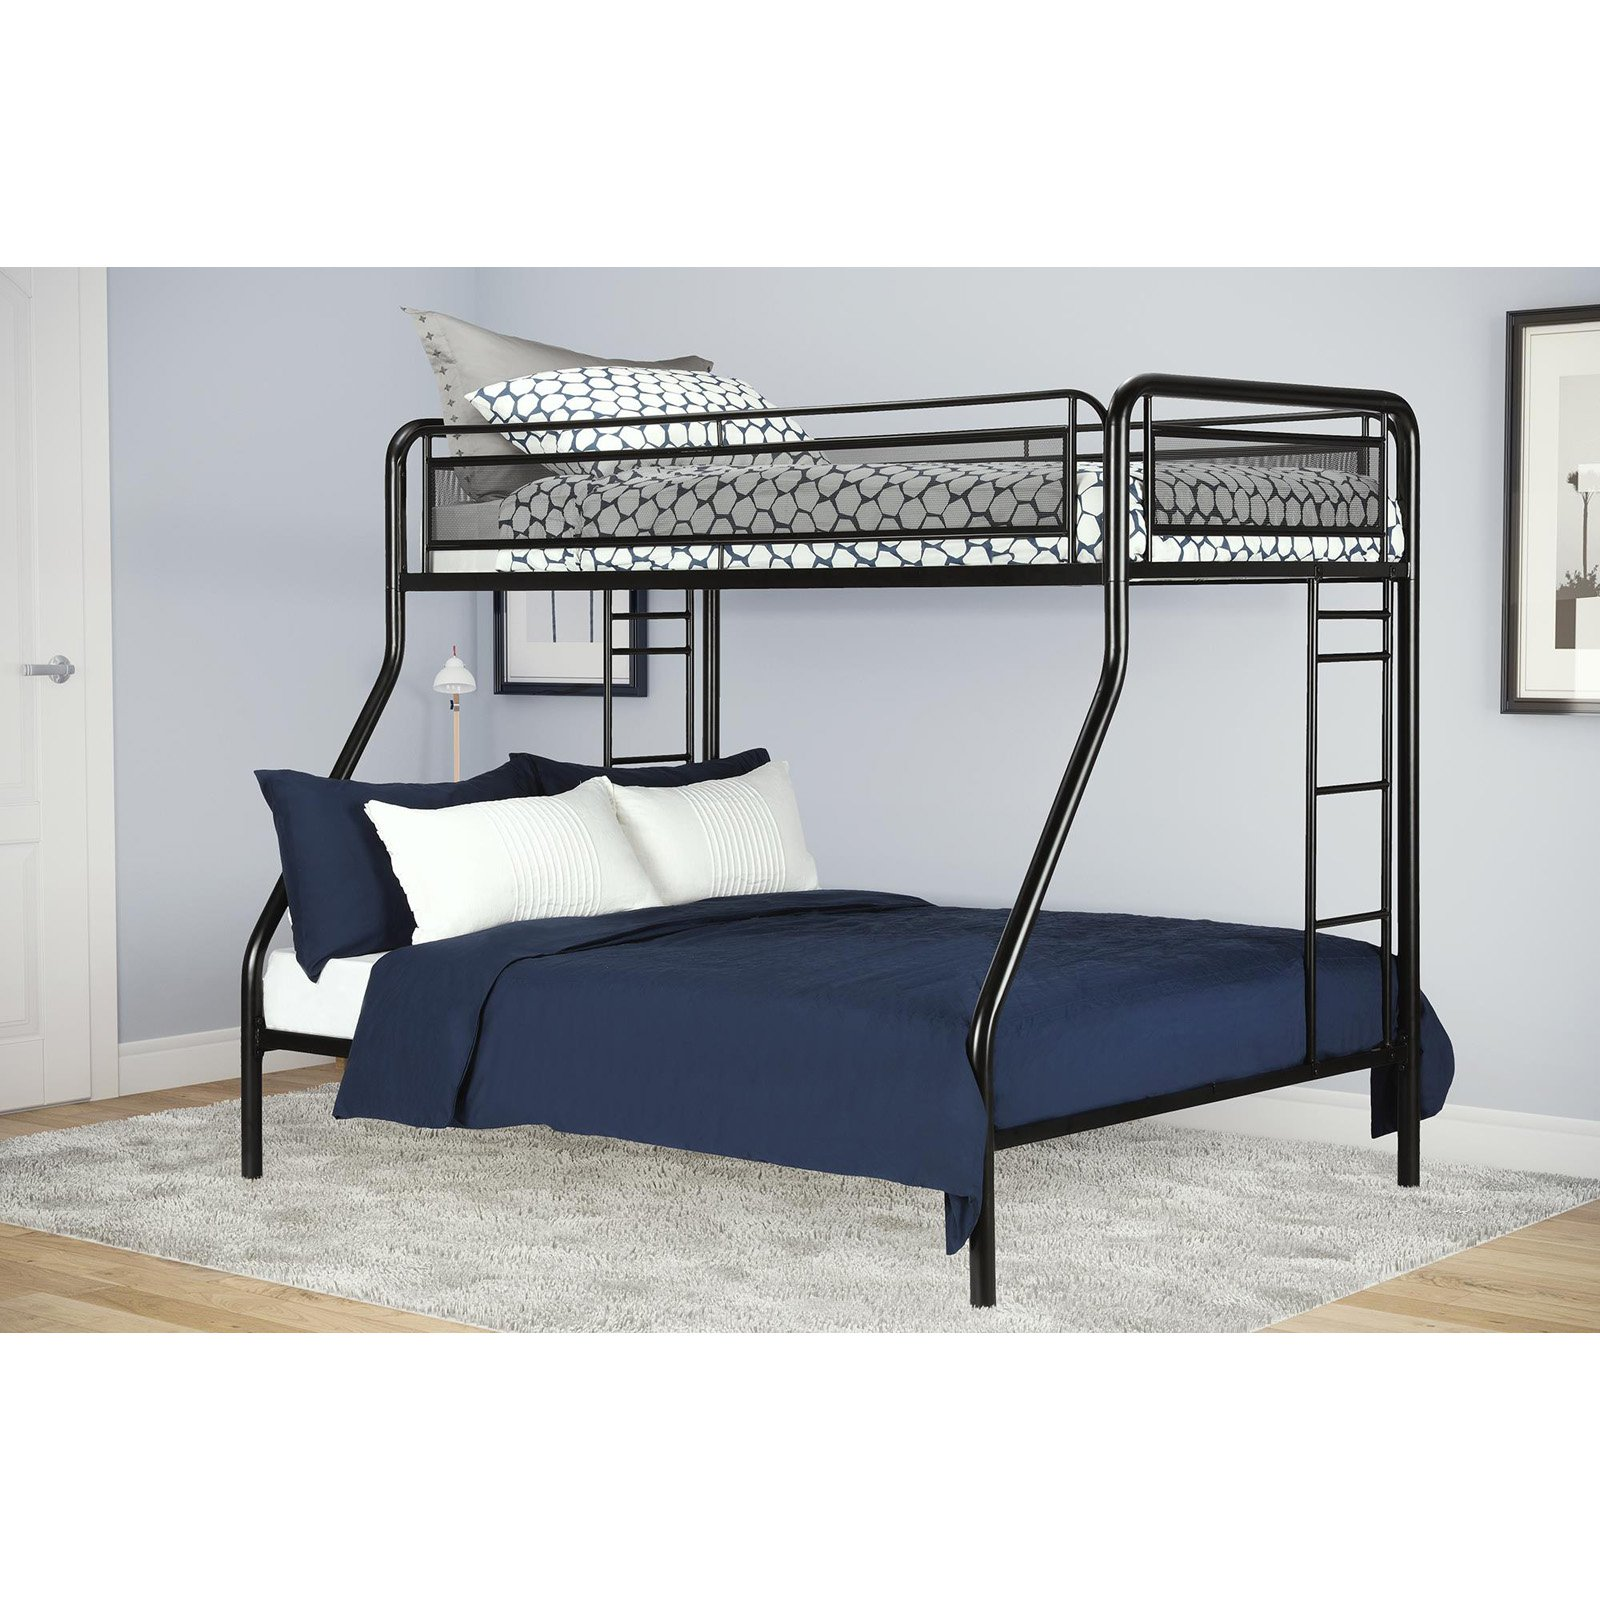 zone teens dorel products loft bed over details beds your twin eng bunk living white full